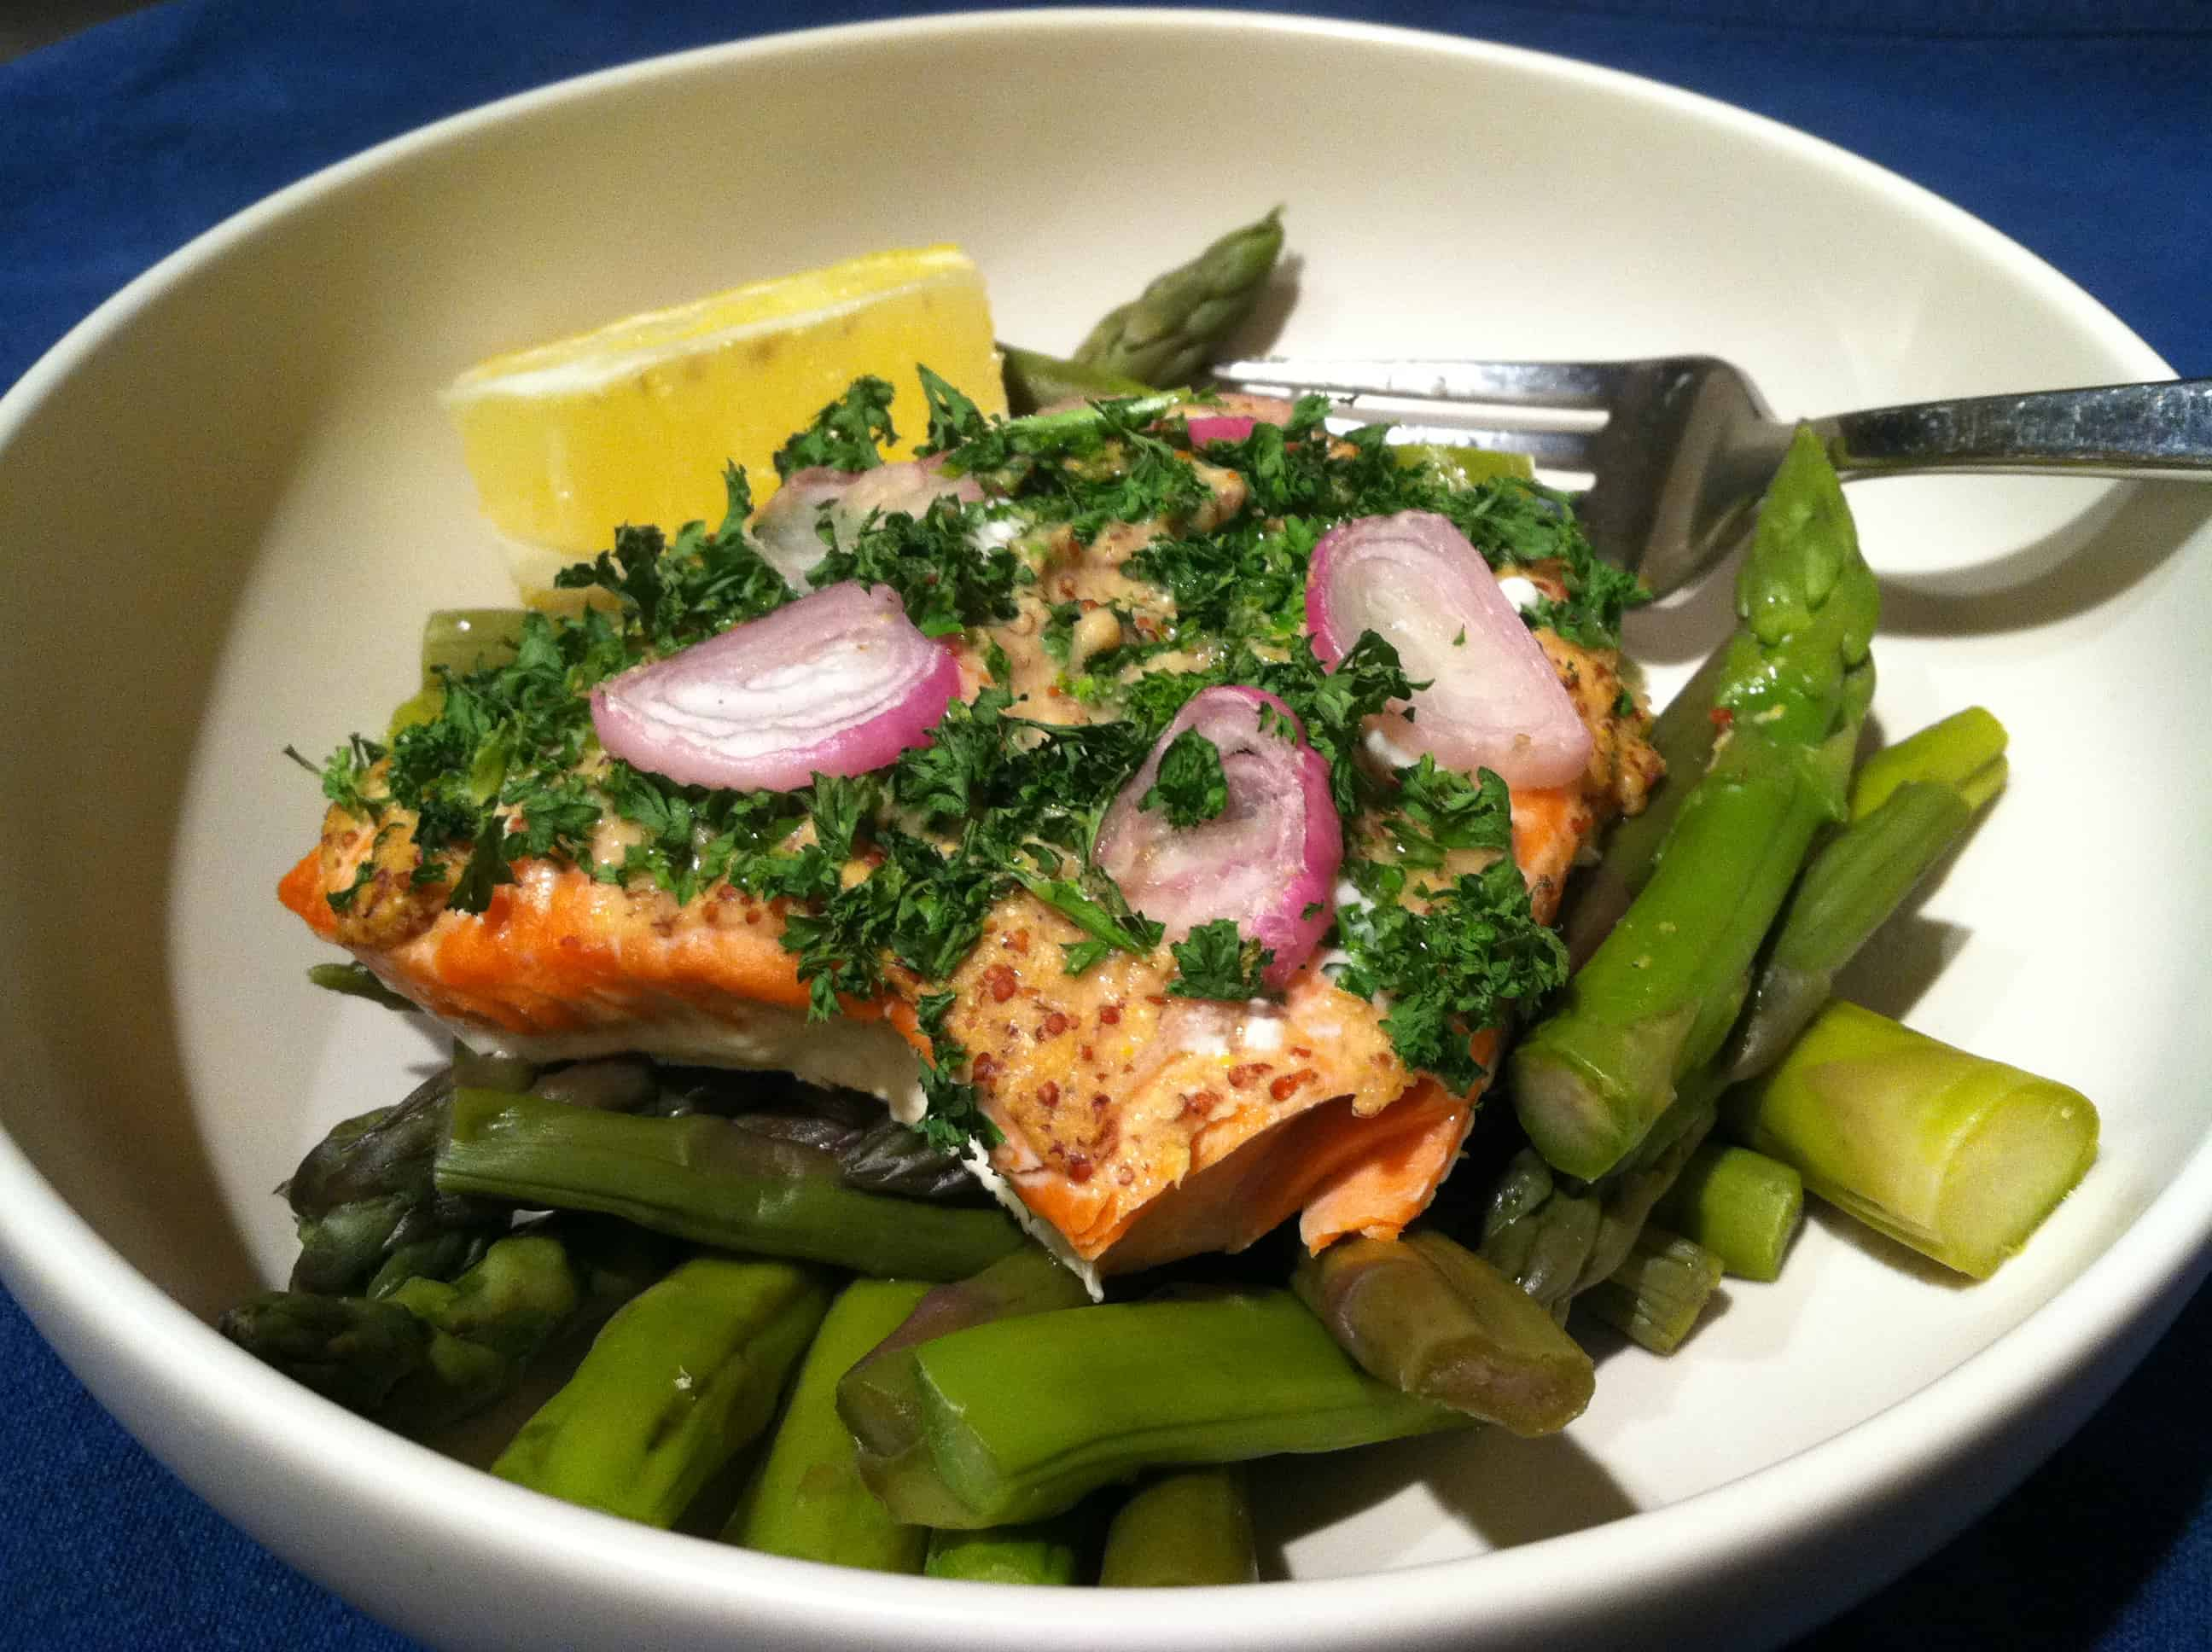 Baked Salmon with Grainy Mustard, Parsley and Sliced Shallots